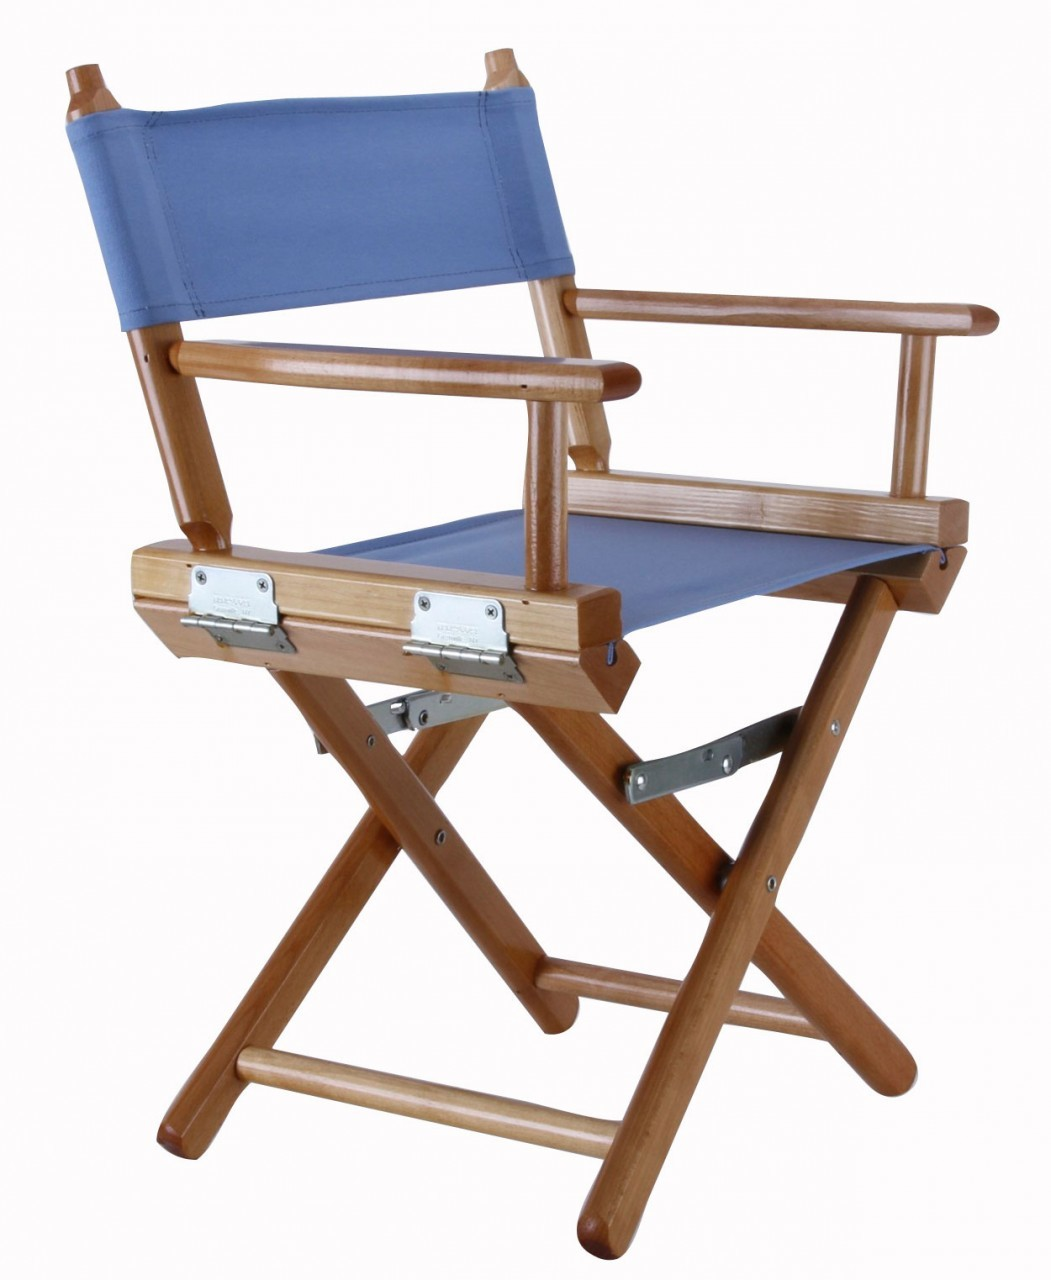 Attractive Directors Chair Replacement Canvas for Best Director Chair Ideas: Directors Chair Replacement Canvas | Bar Height Directors Chair | Director Chair Back Replacement